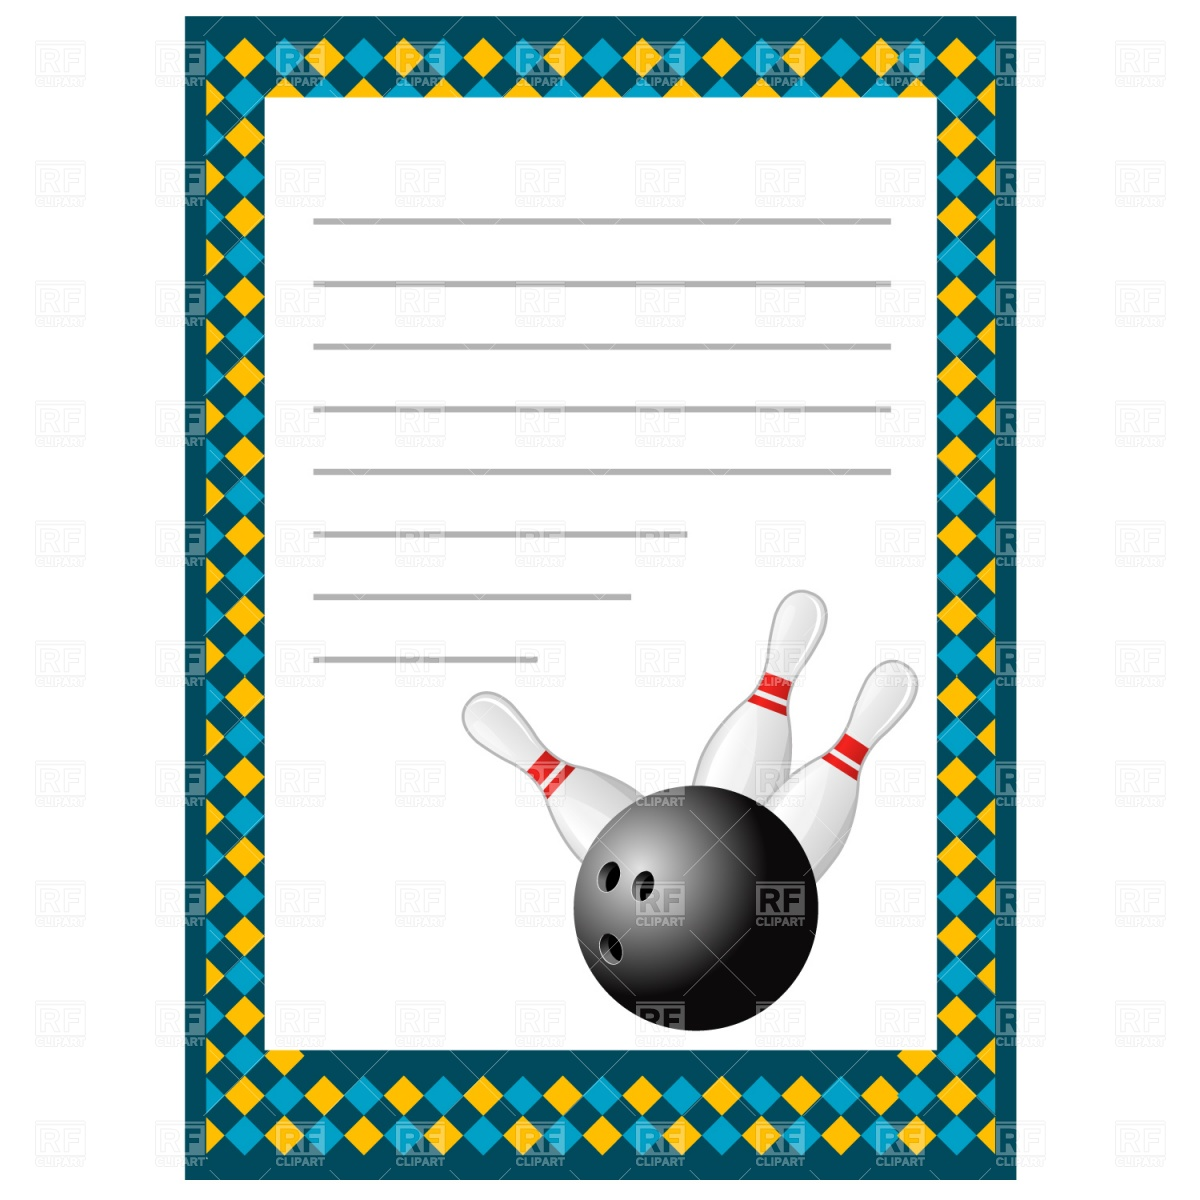 Bowling invitation blank template Stock Vector Image.